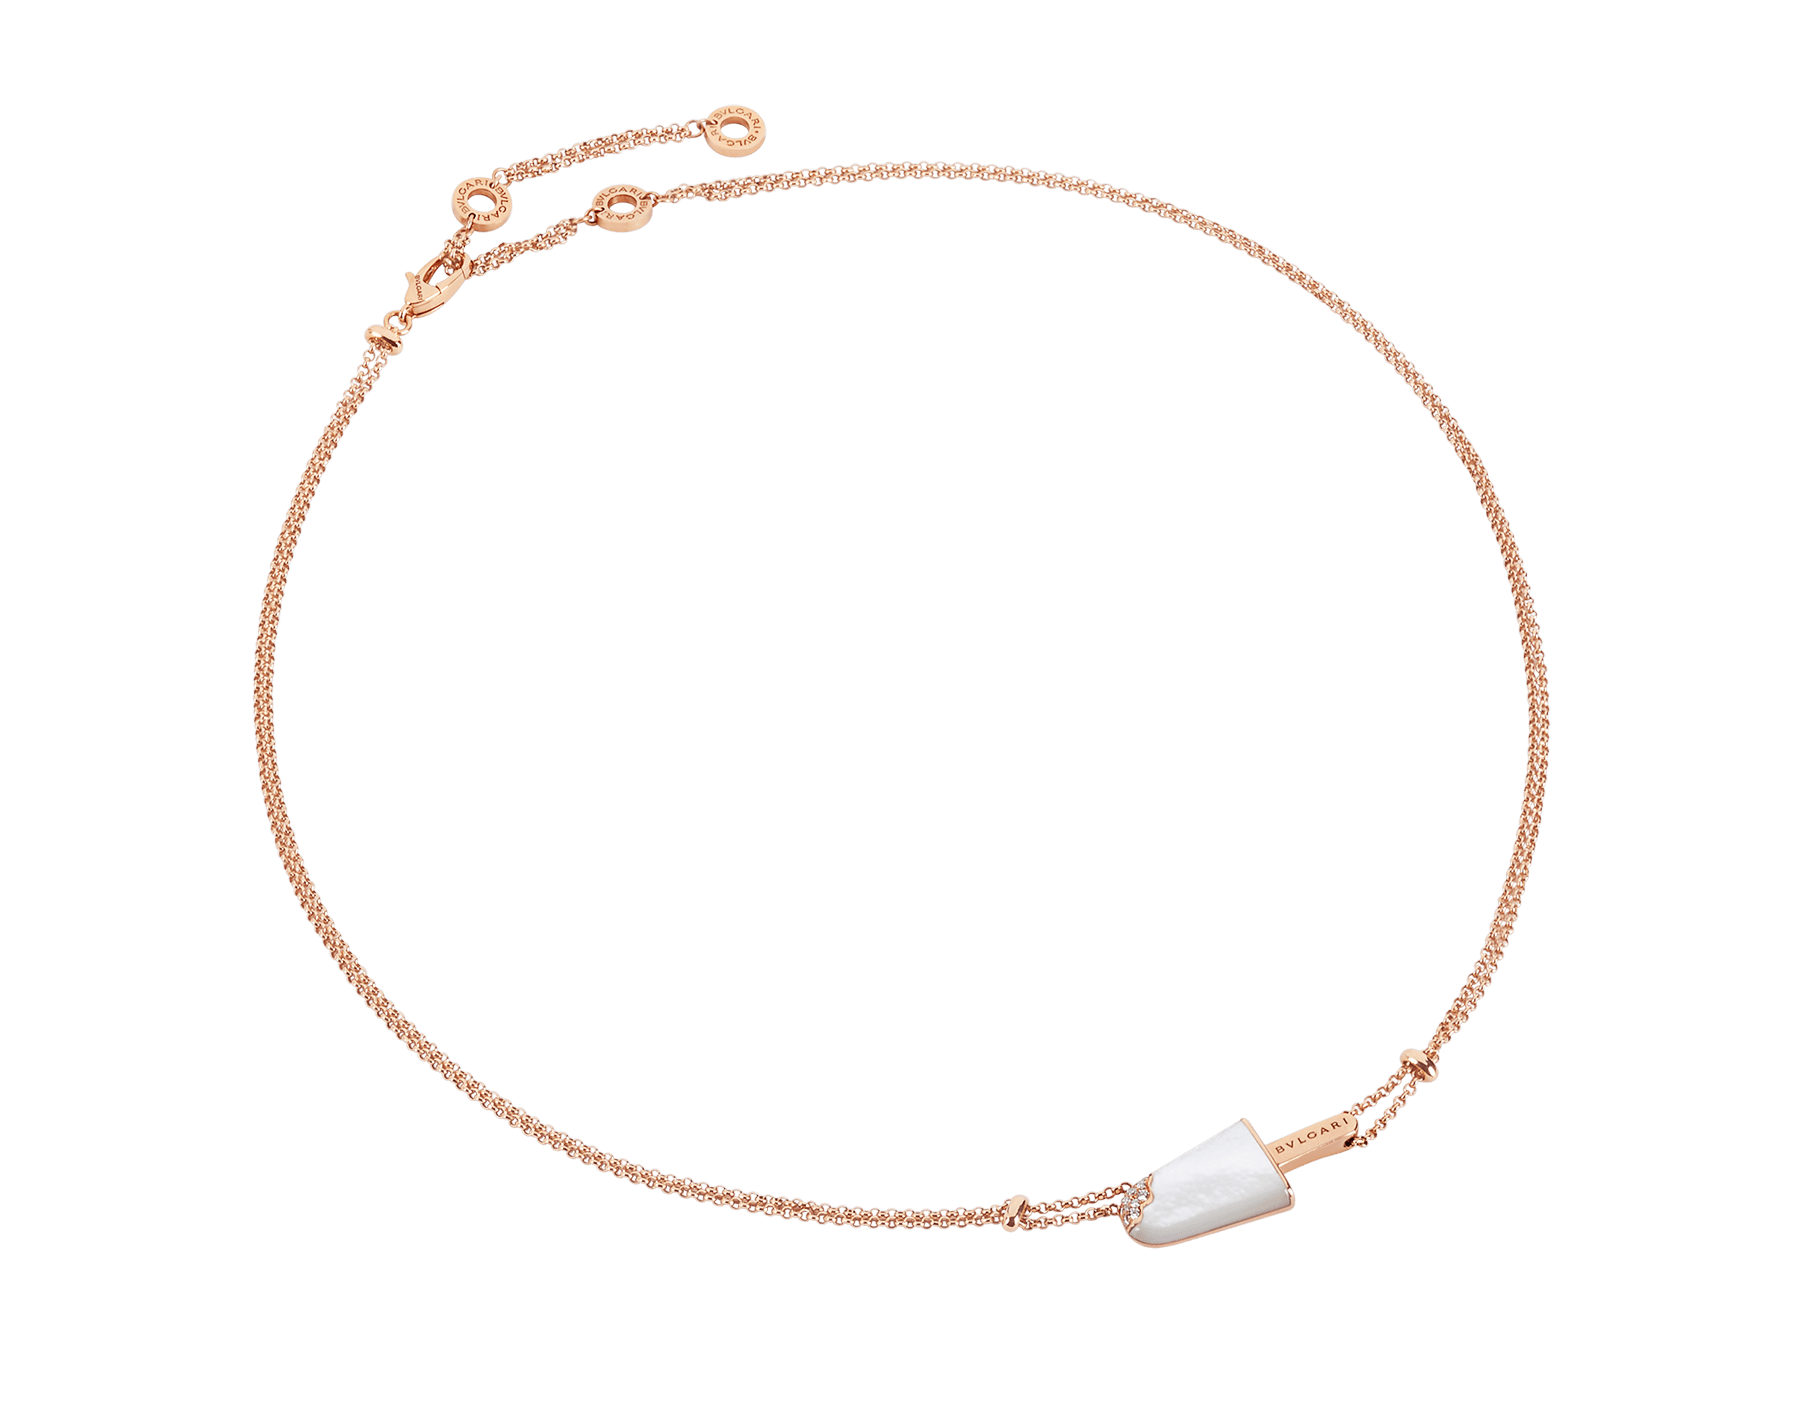 BVLGARI BVLGARI Gelati 18 kt rose gold necklace set with mother-of-pearl and pavé diamonds 356132 image 1